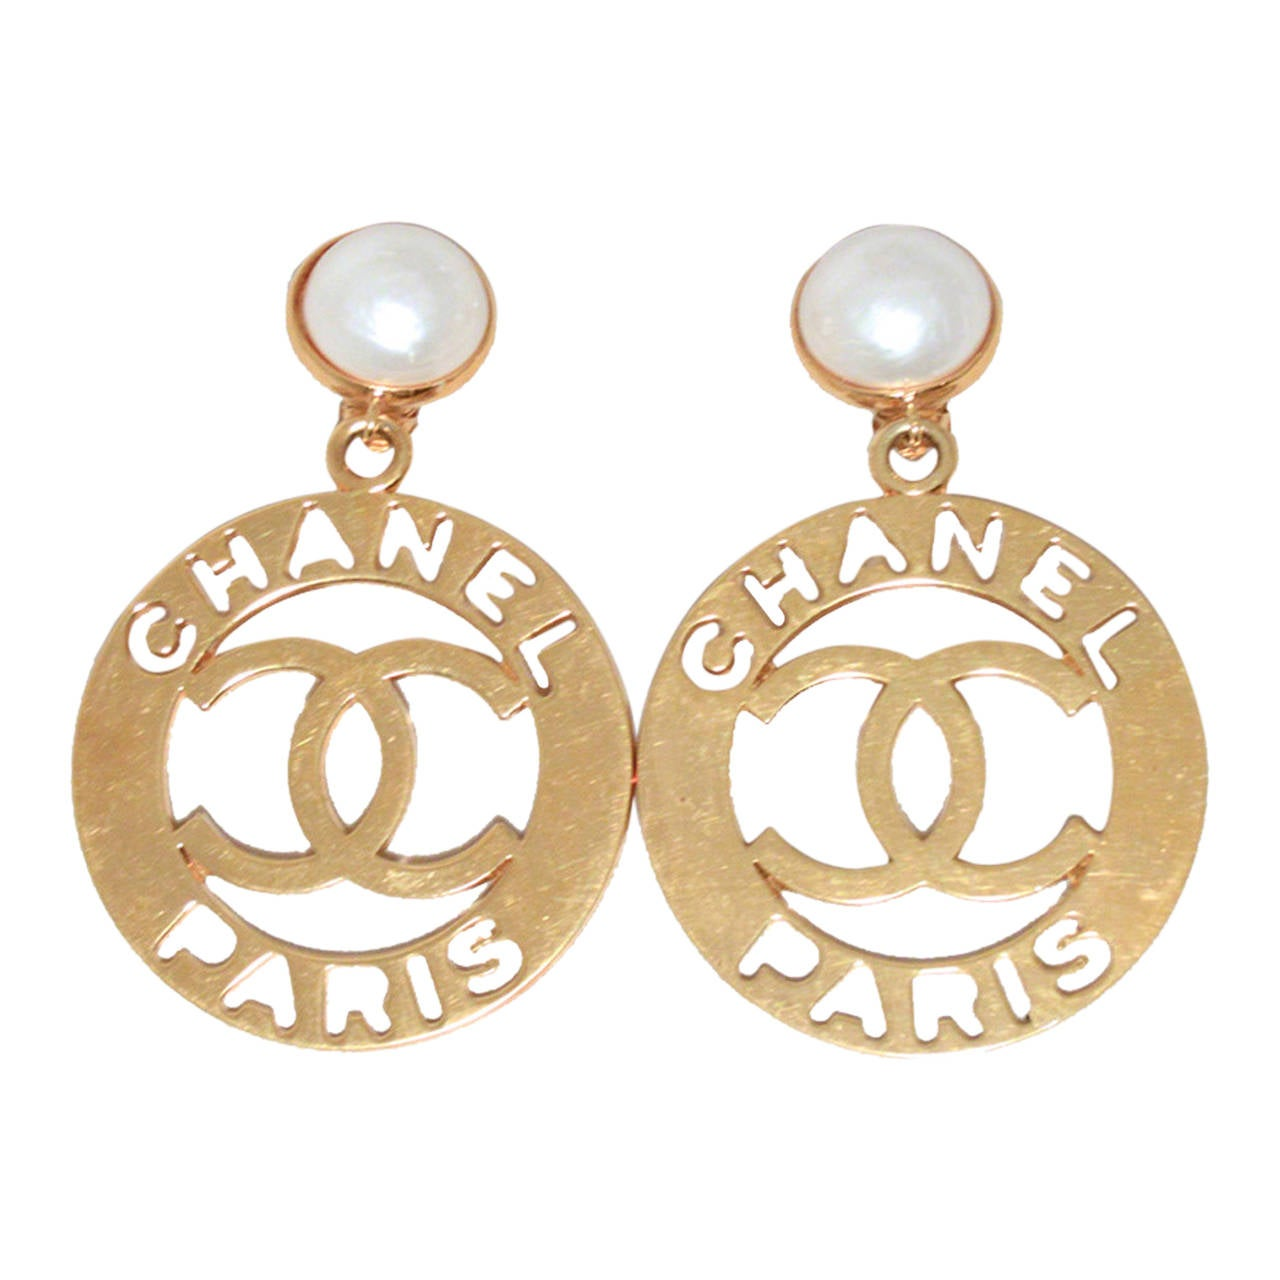 Chanel Paris Iconic Gold And Pearl Vintage Round Earrings 1